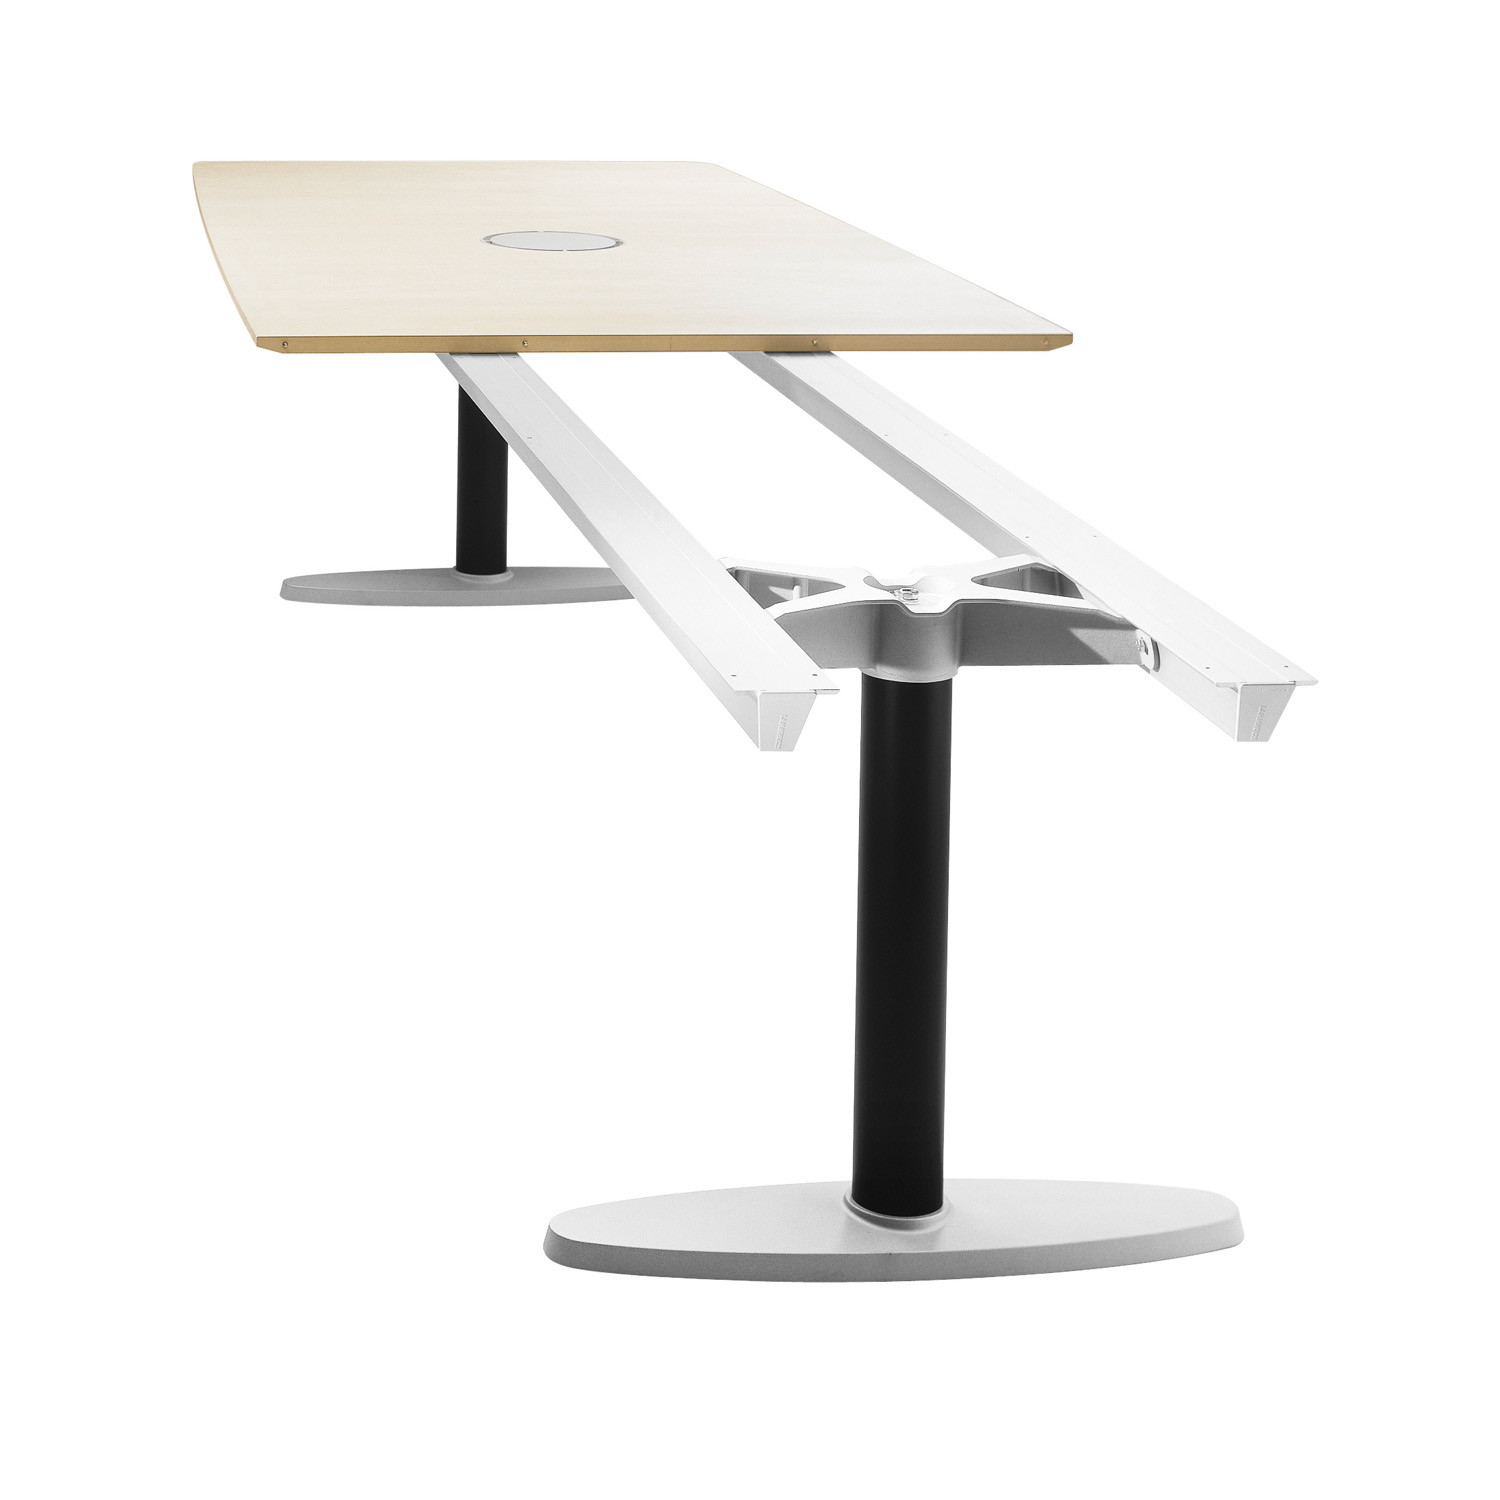 Atlas meeting room table by Lammhults